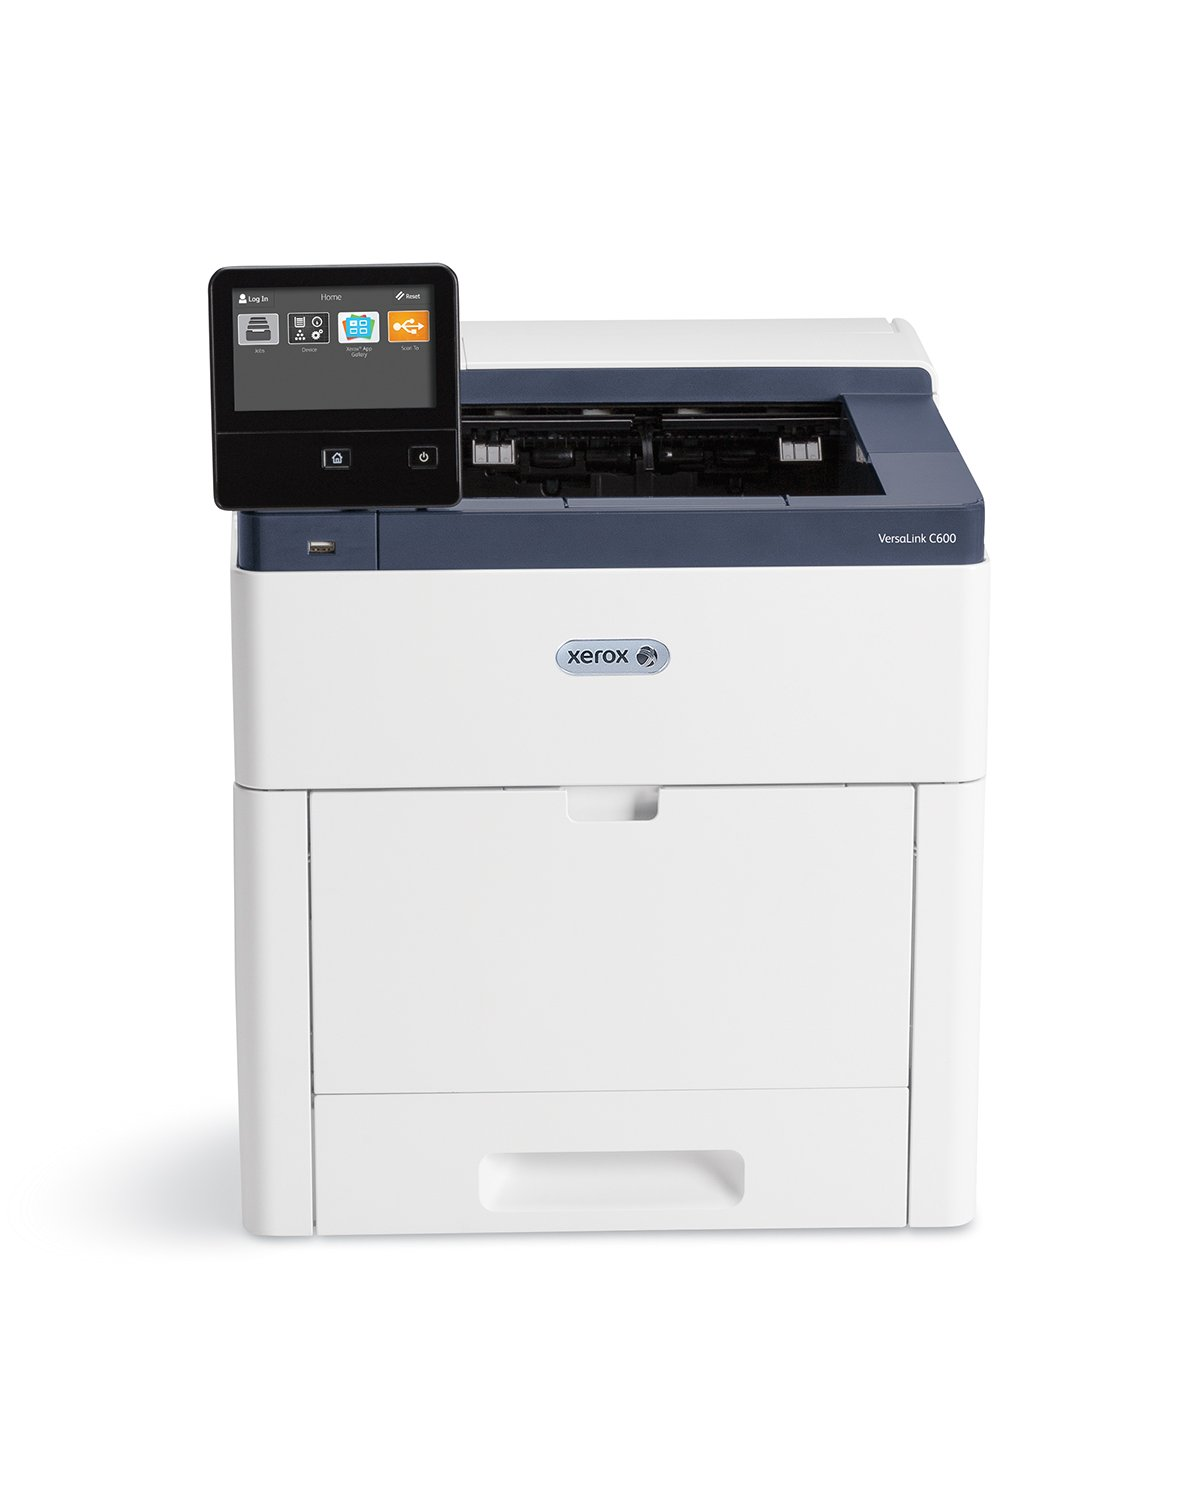 """Xerox C600/N VersaLink Color Laser Printer Letter/Legal up to 55ppm USB/Ethernet 550 Sheet Tray 150 Sheet Multi Purpose Tray 5"""" Display"""